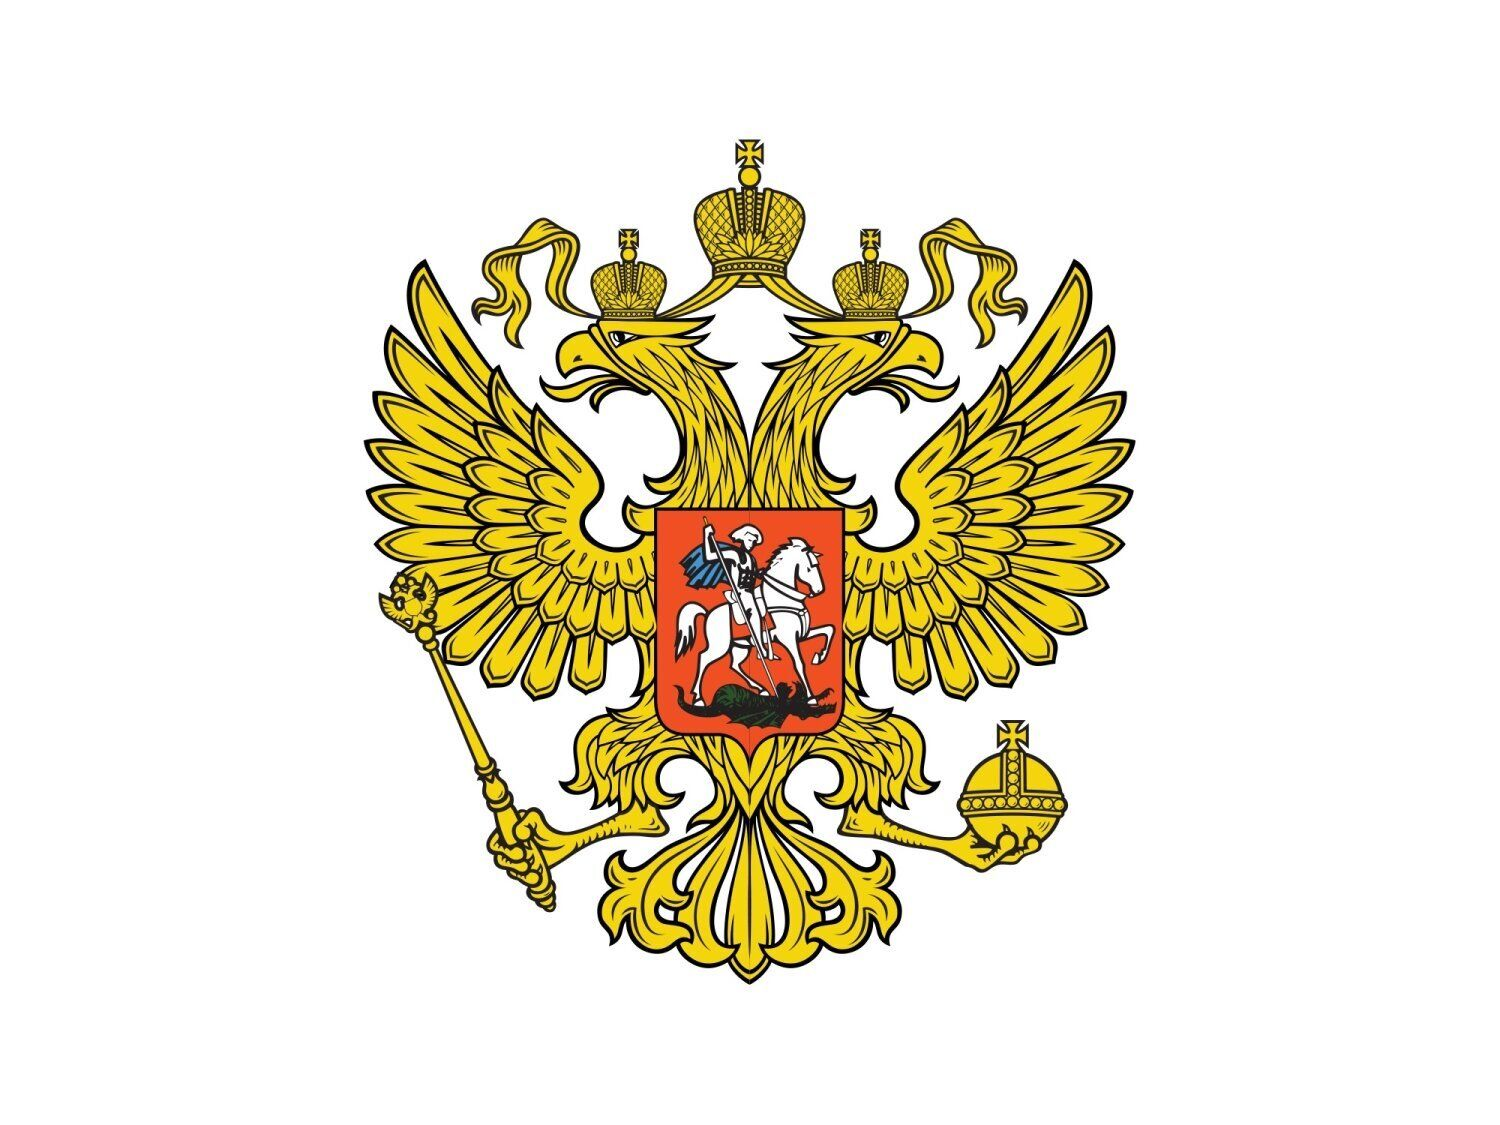 Russia's coat of arms.